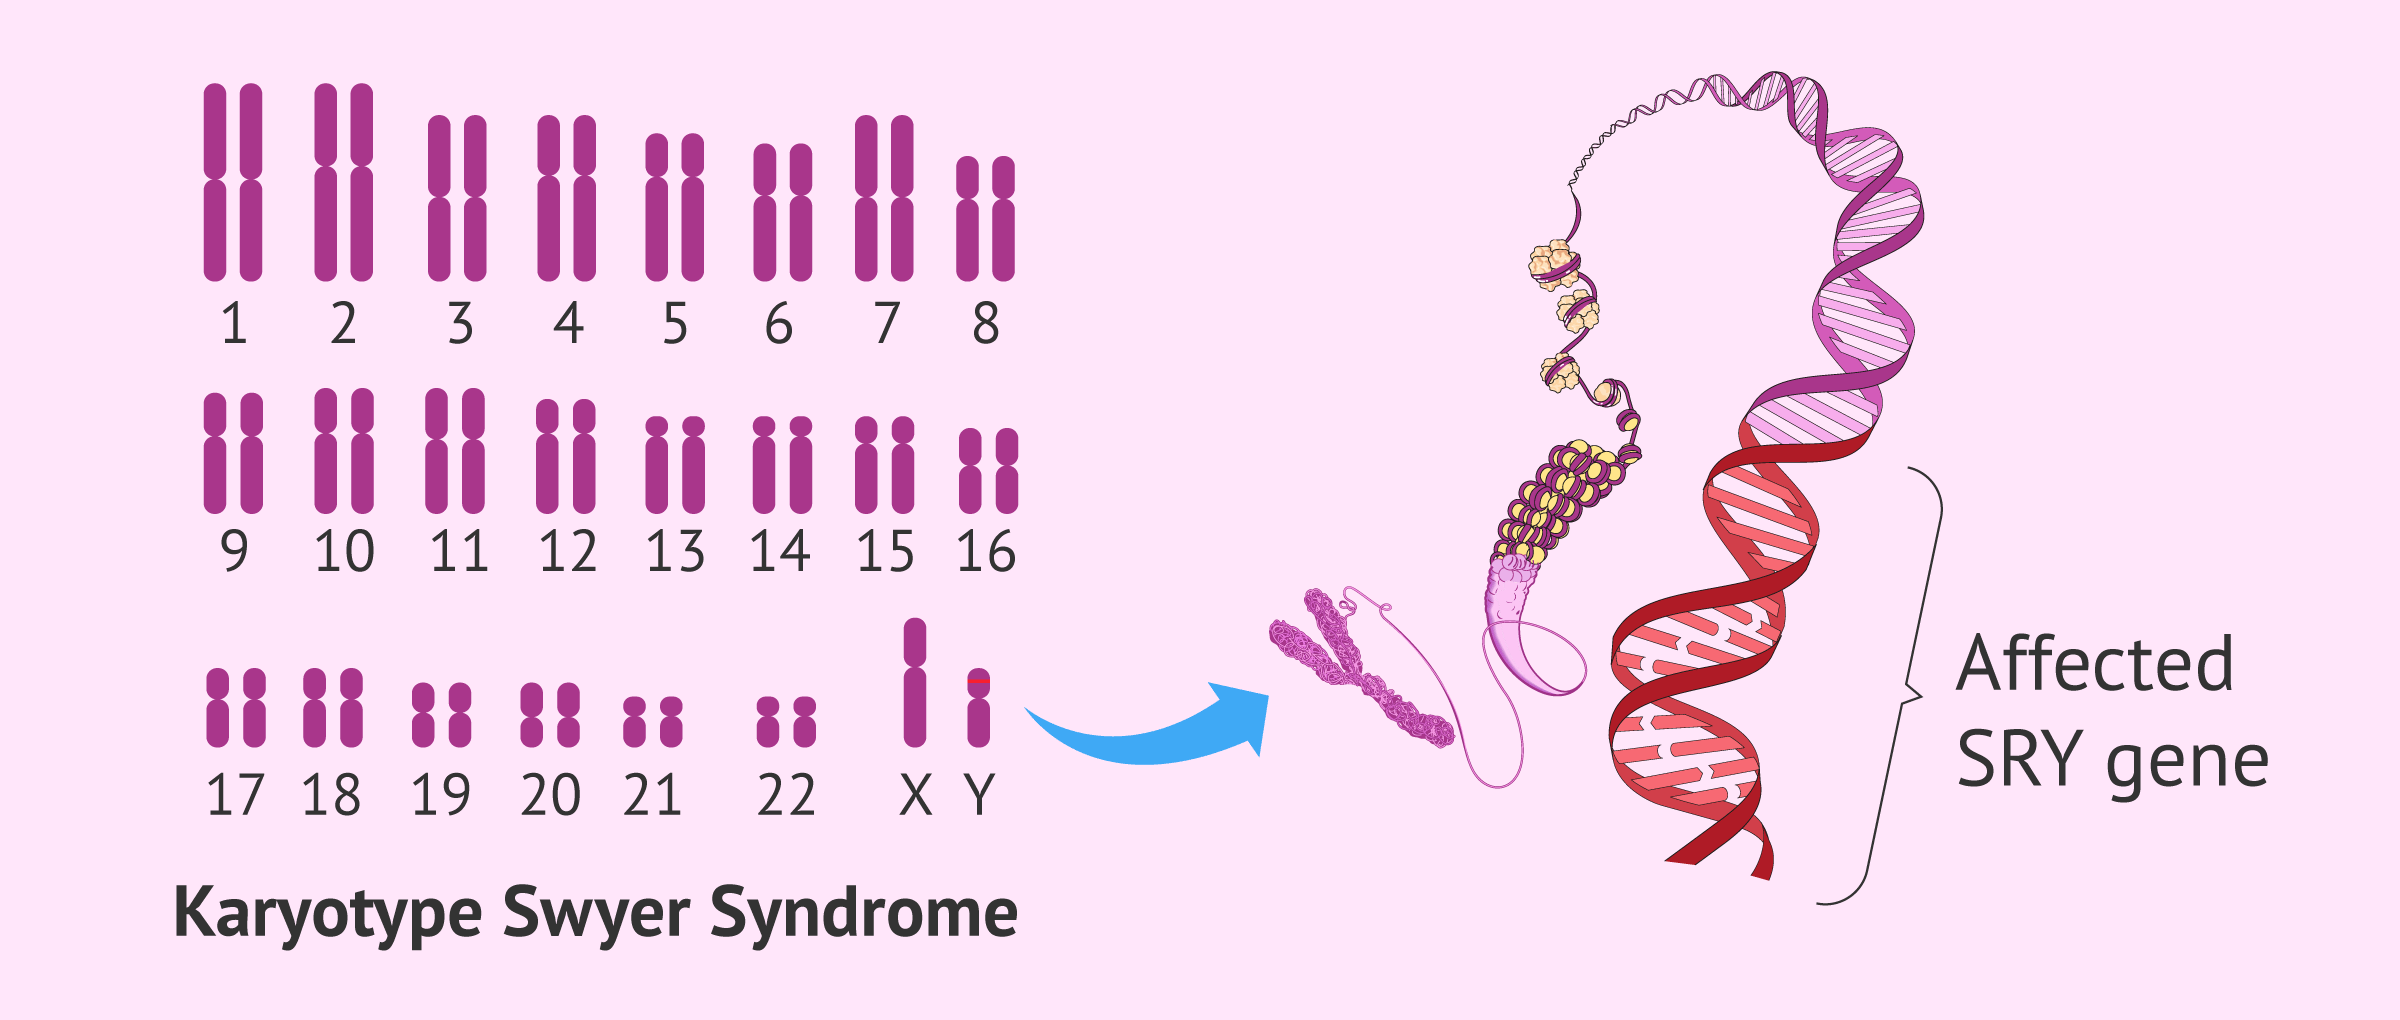 Karyotype in Swyer syndrome